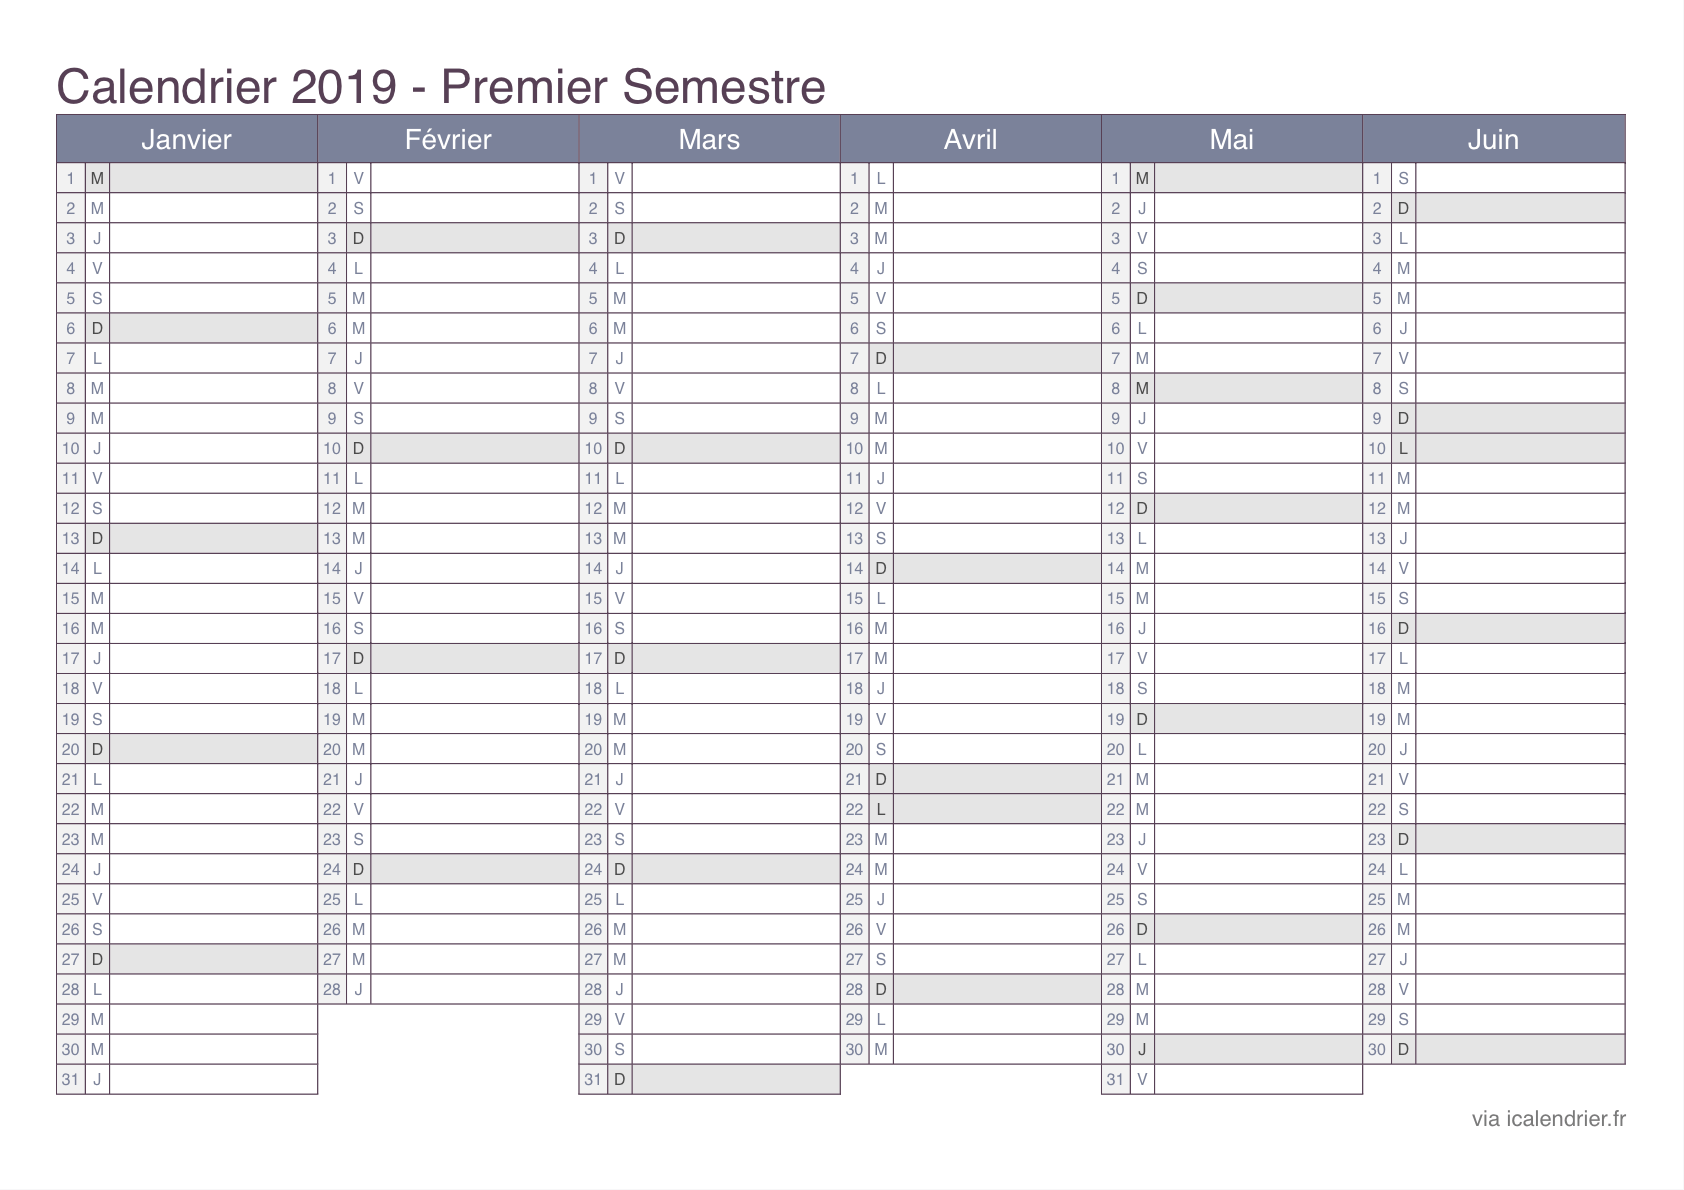 Calendrier Excell.Calendrier 2019 A Imprimer Pdf Et Excel Icalendrier